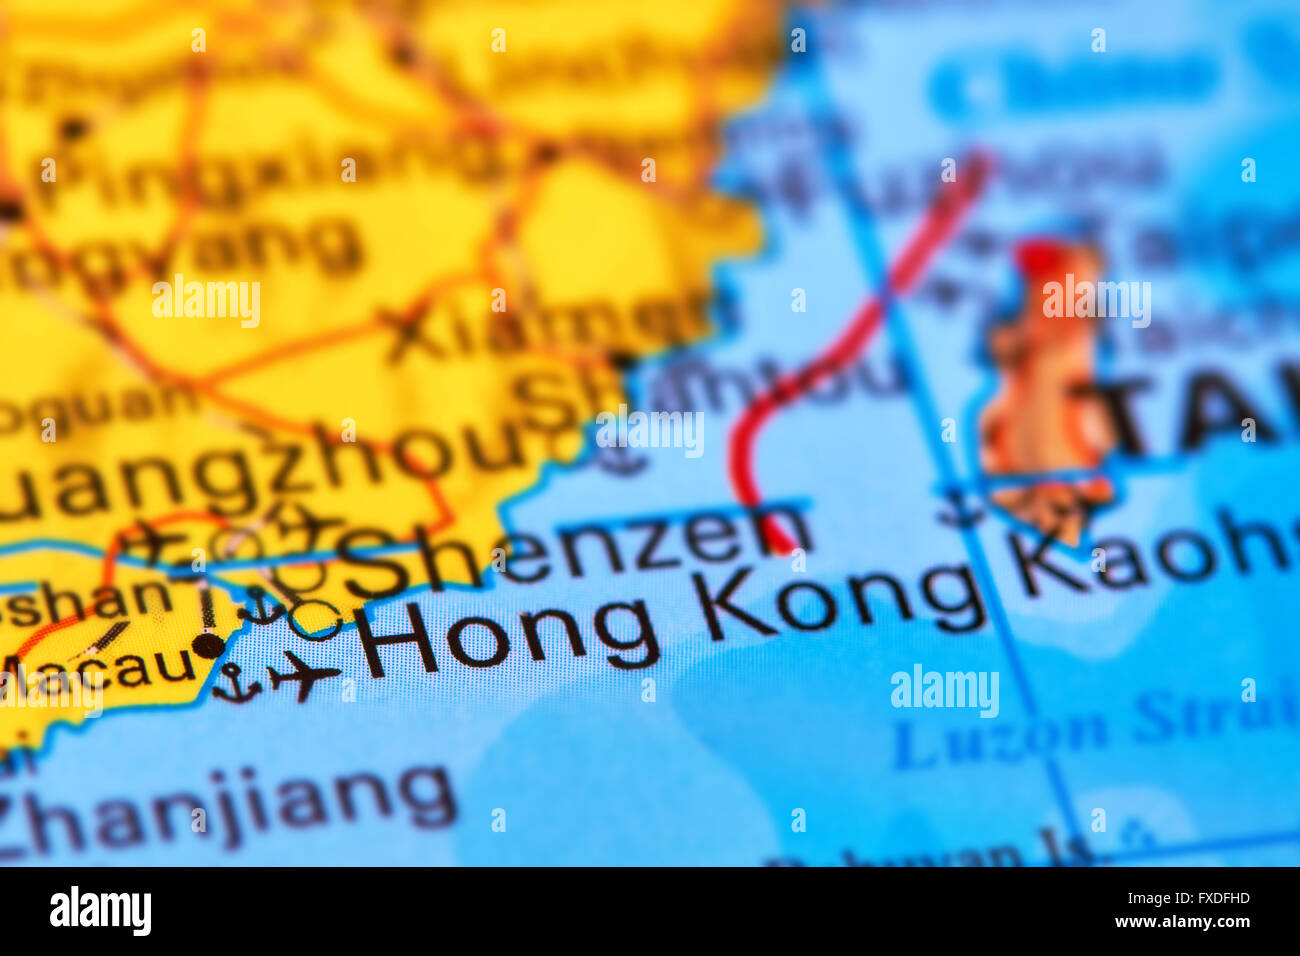 Hong Kong City in China on the World Map Stock Photo Royalty